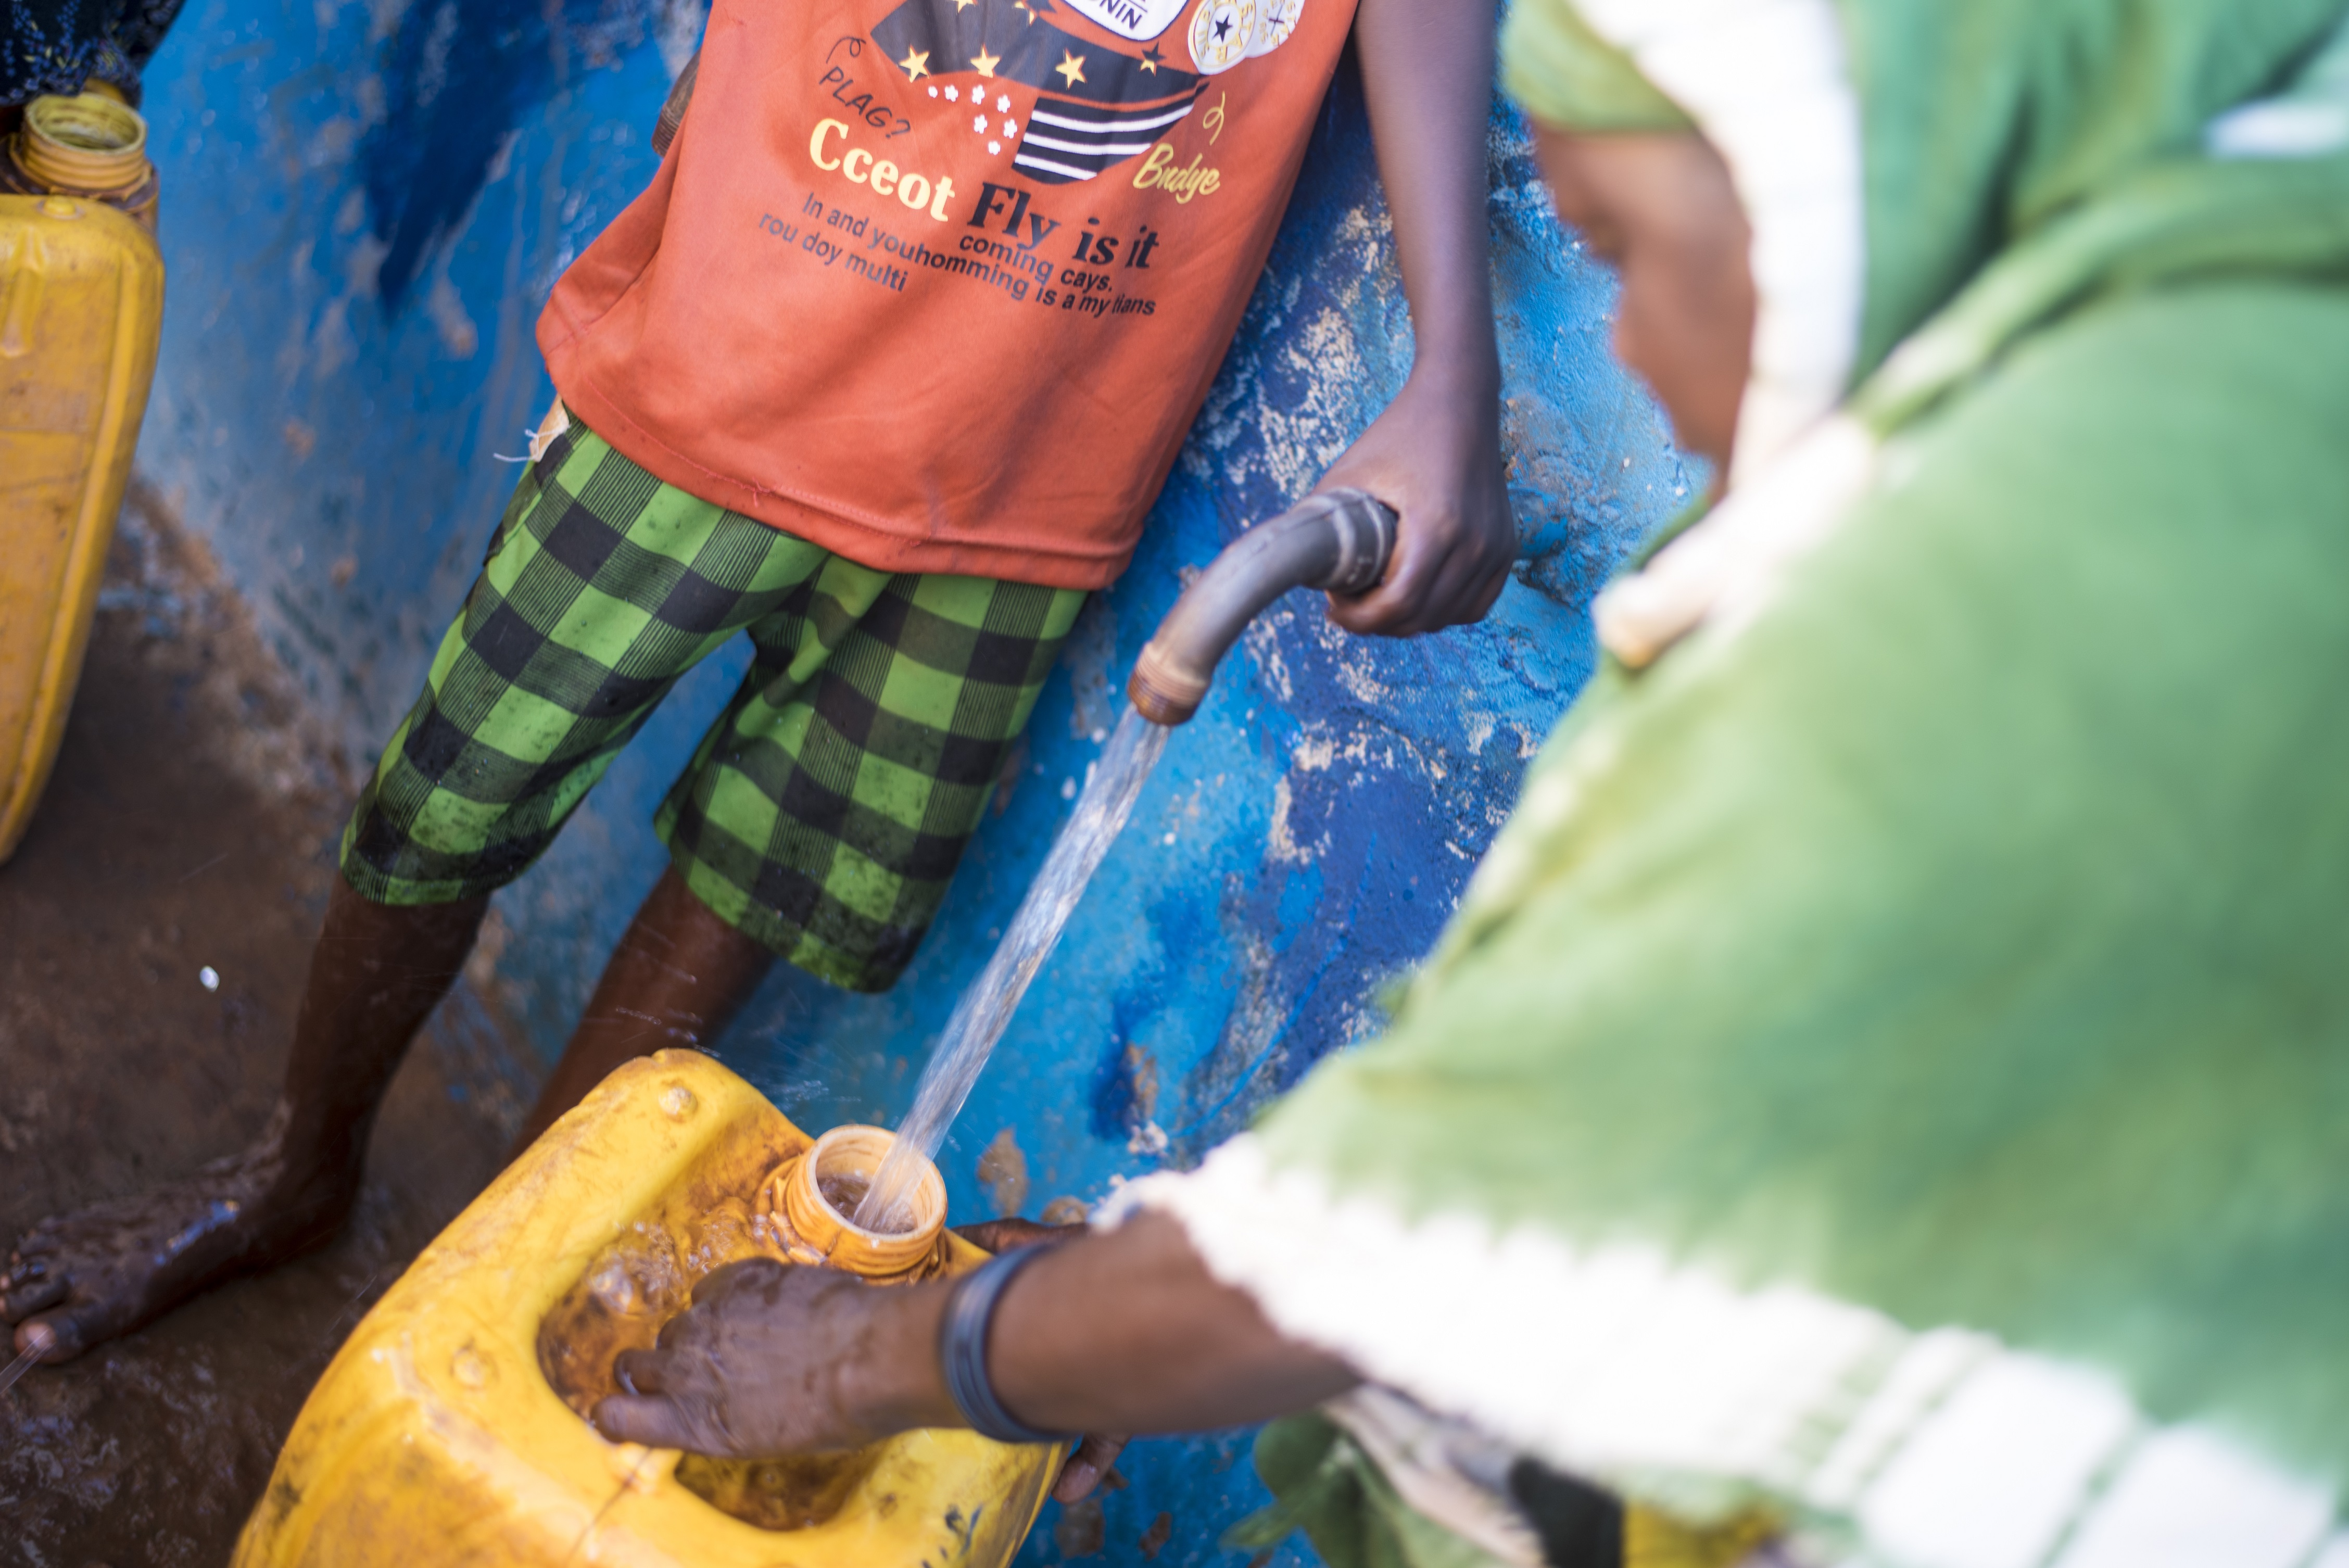 People obtain water from the water kiosk